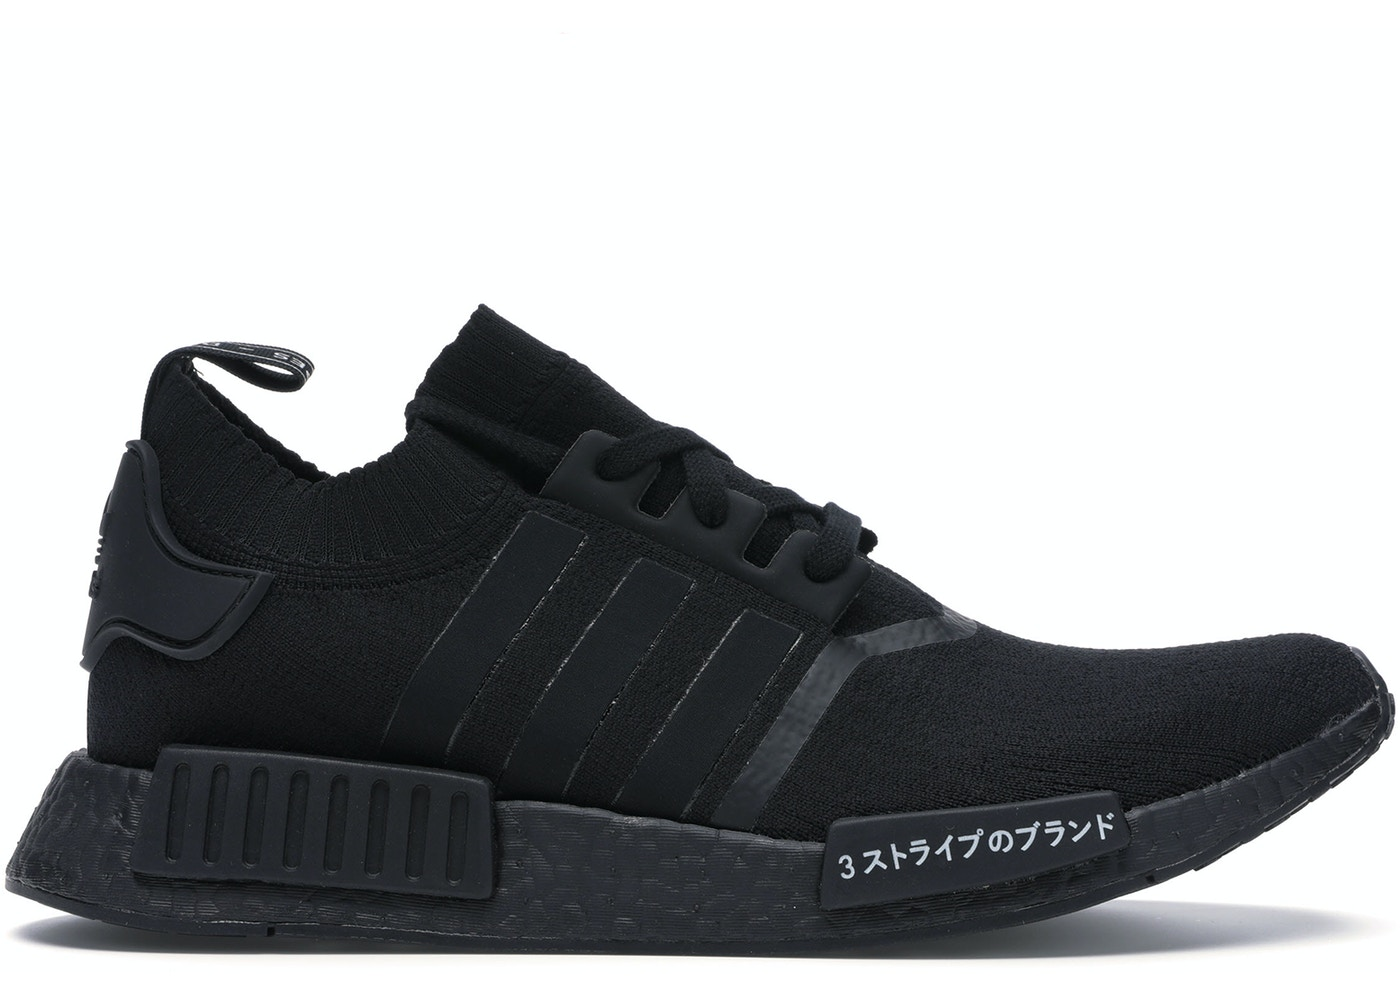 new arrival aed4d 93e46 adidas NMD R1 Japan Triple Black - BZ0220